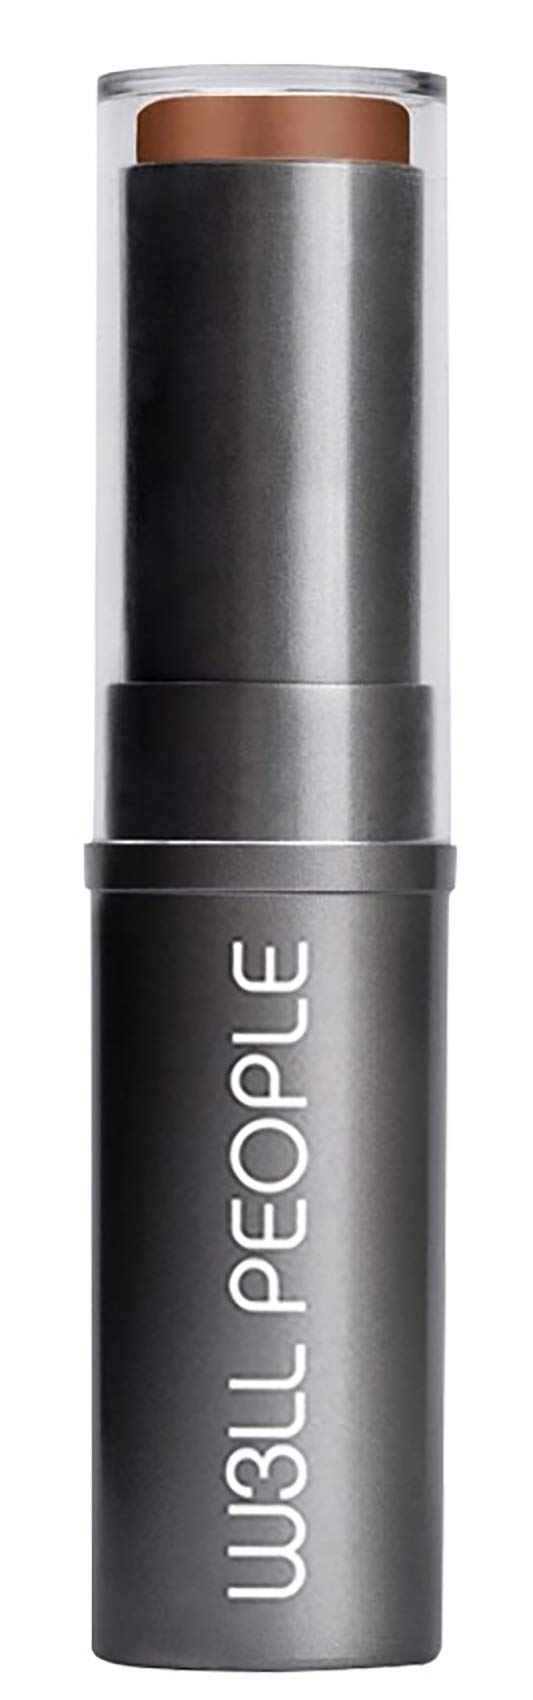 W3LL PEOPLE - Natural Narcissist Foundation Stick | Clean, Non-Toxic Makeup (Cocoa)